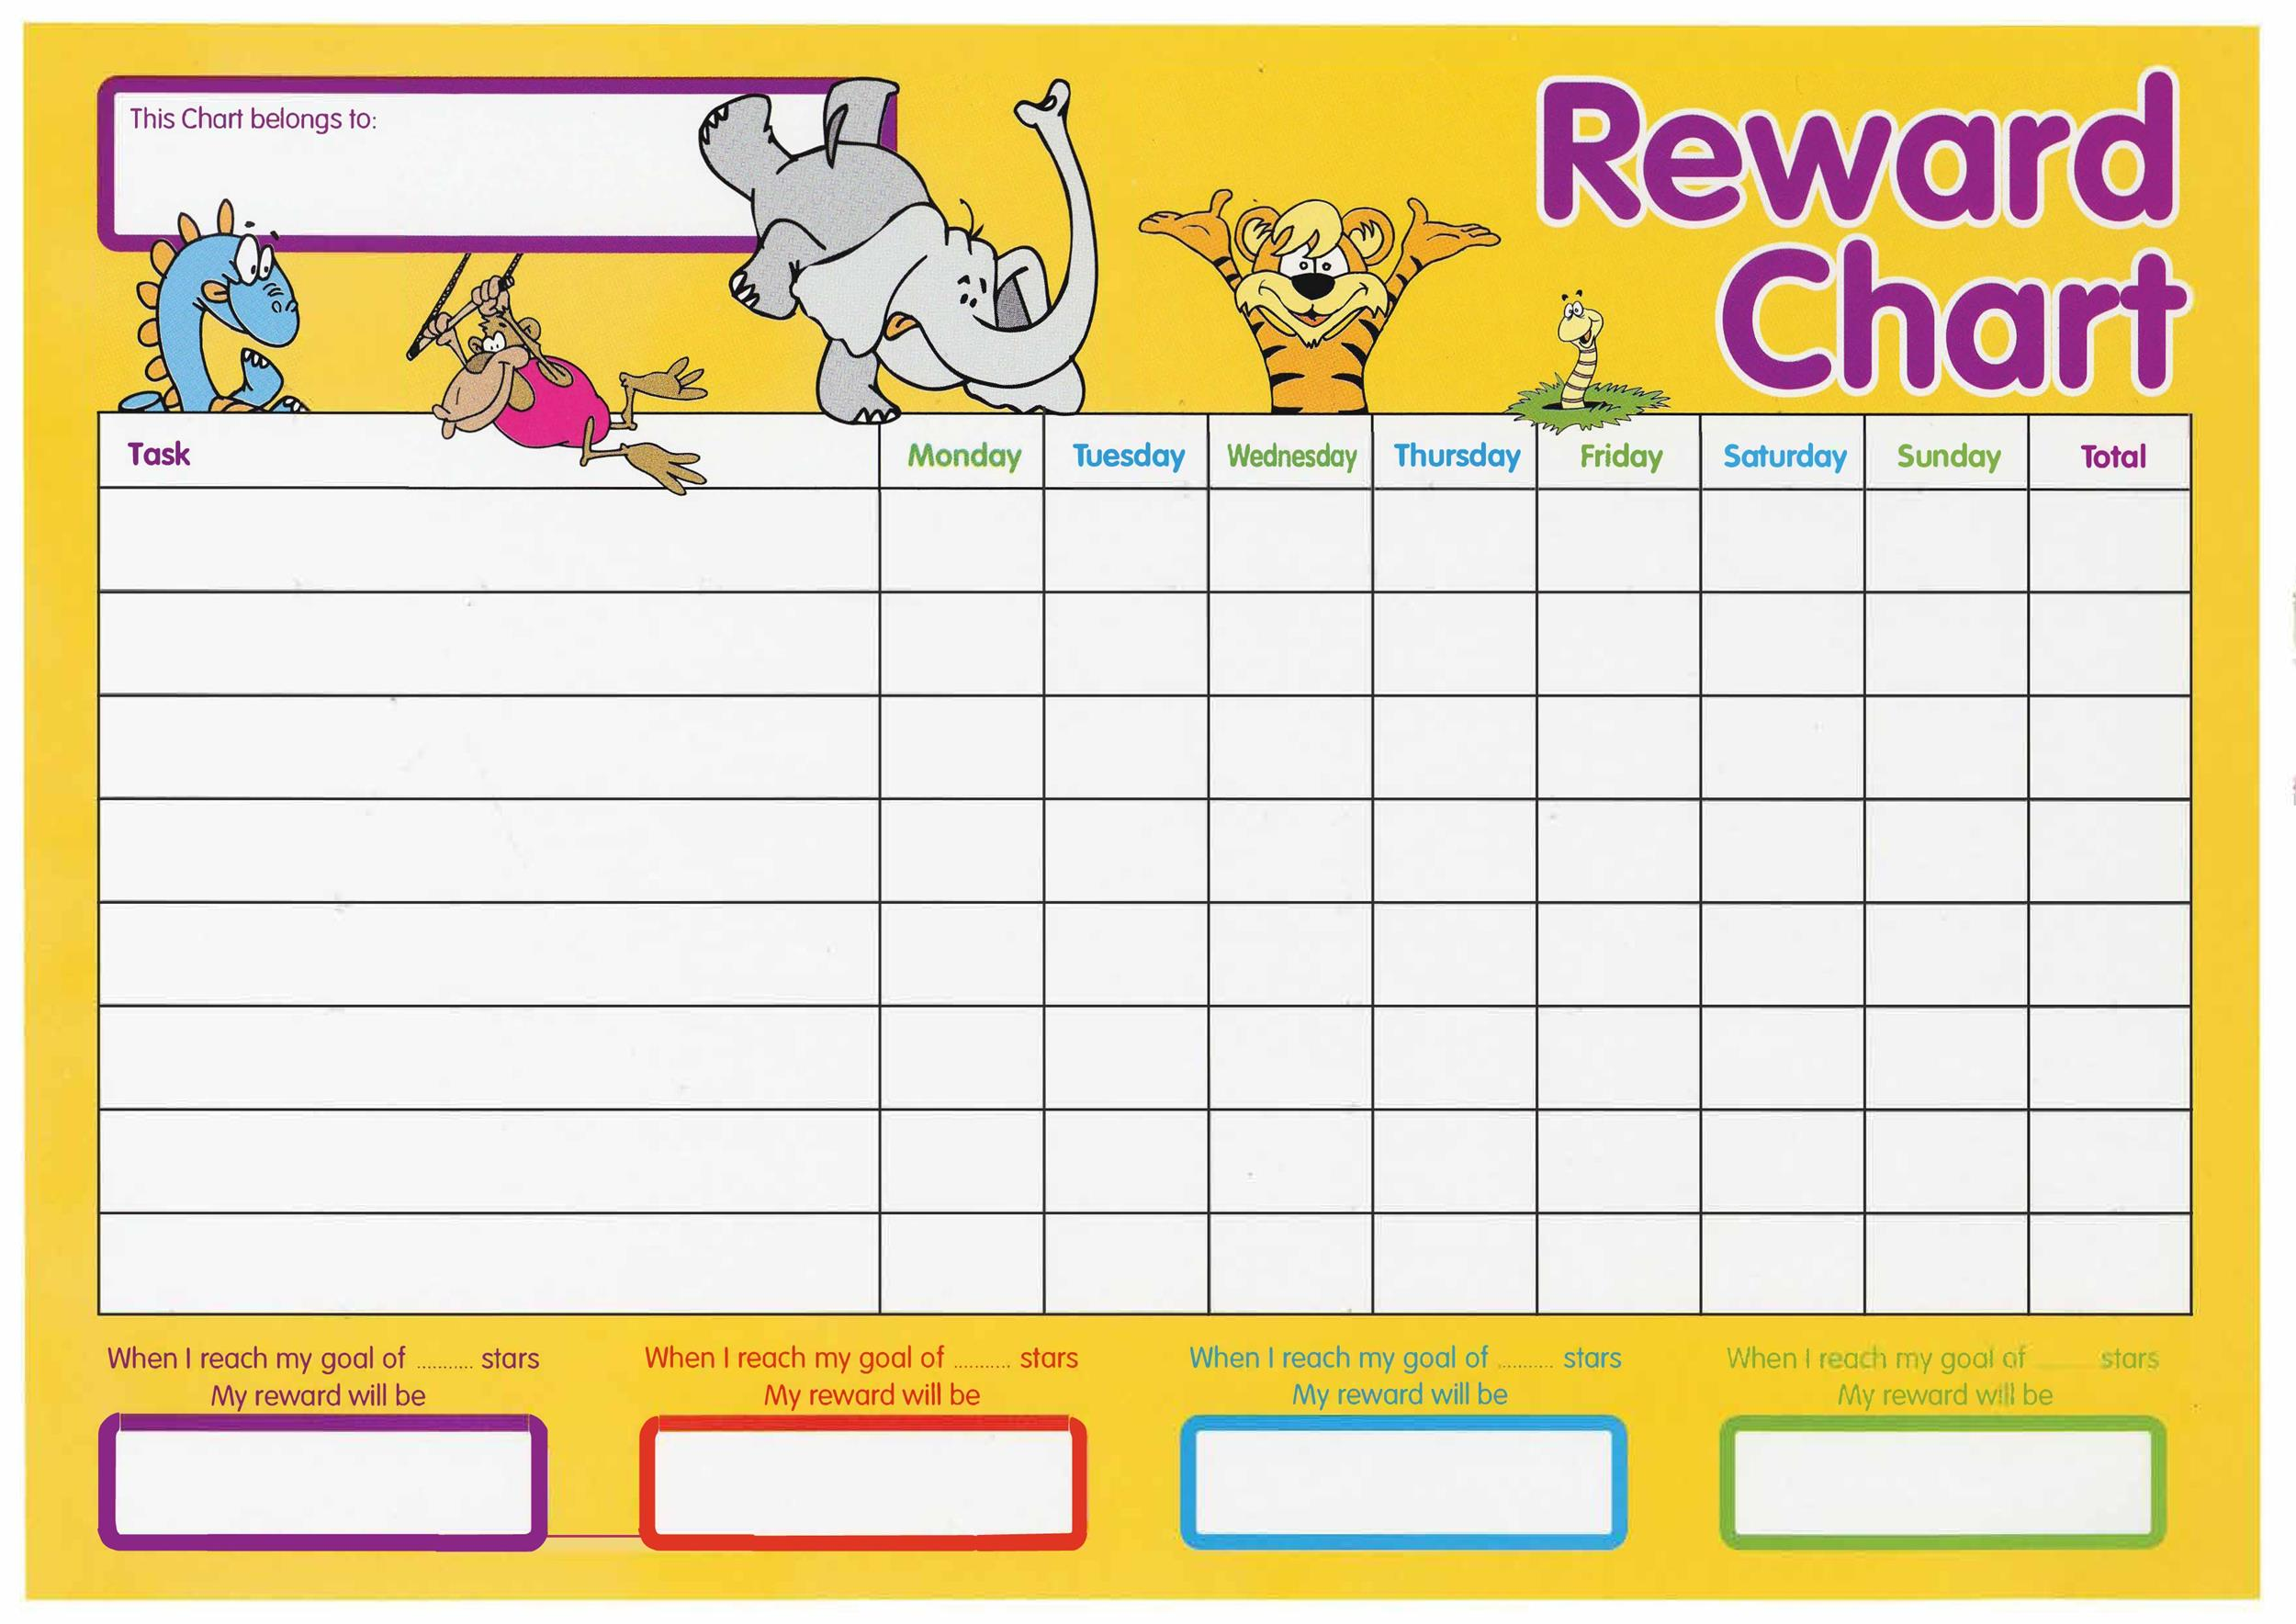 Astounding image pertaining to sticker chart printable